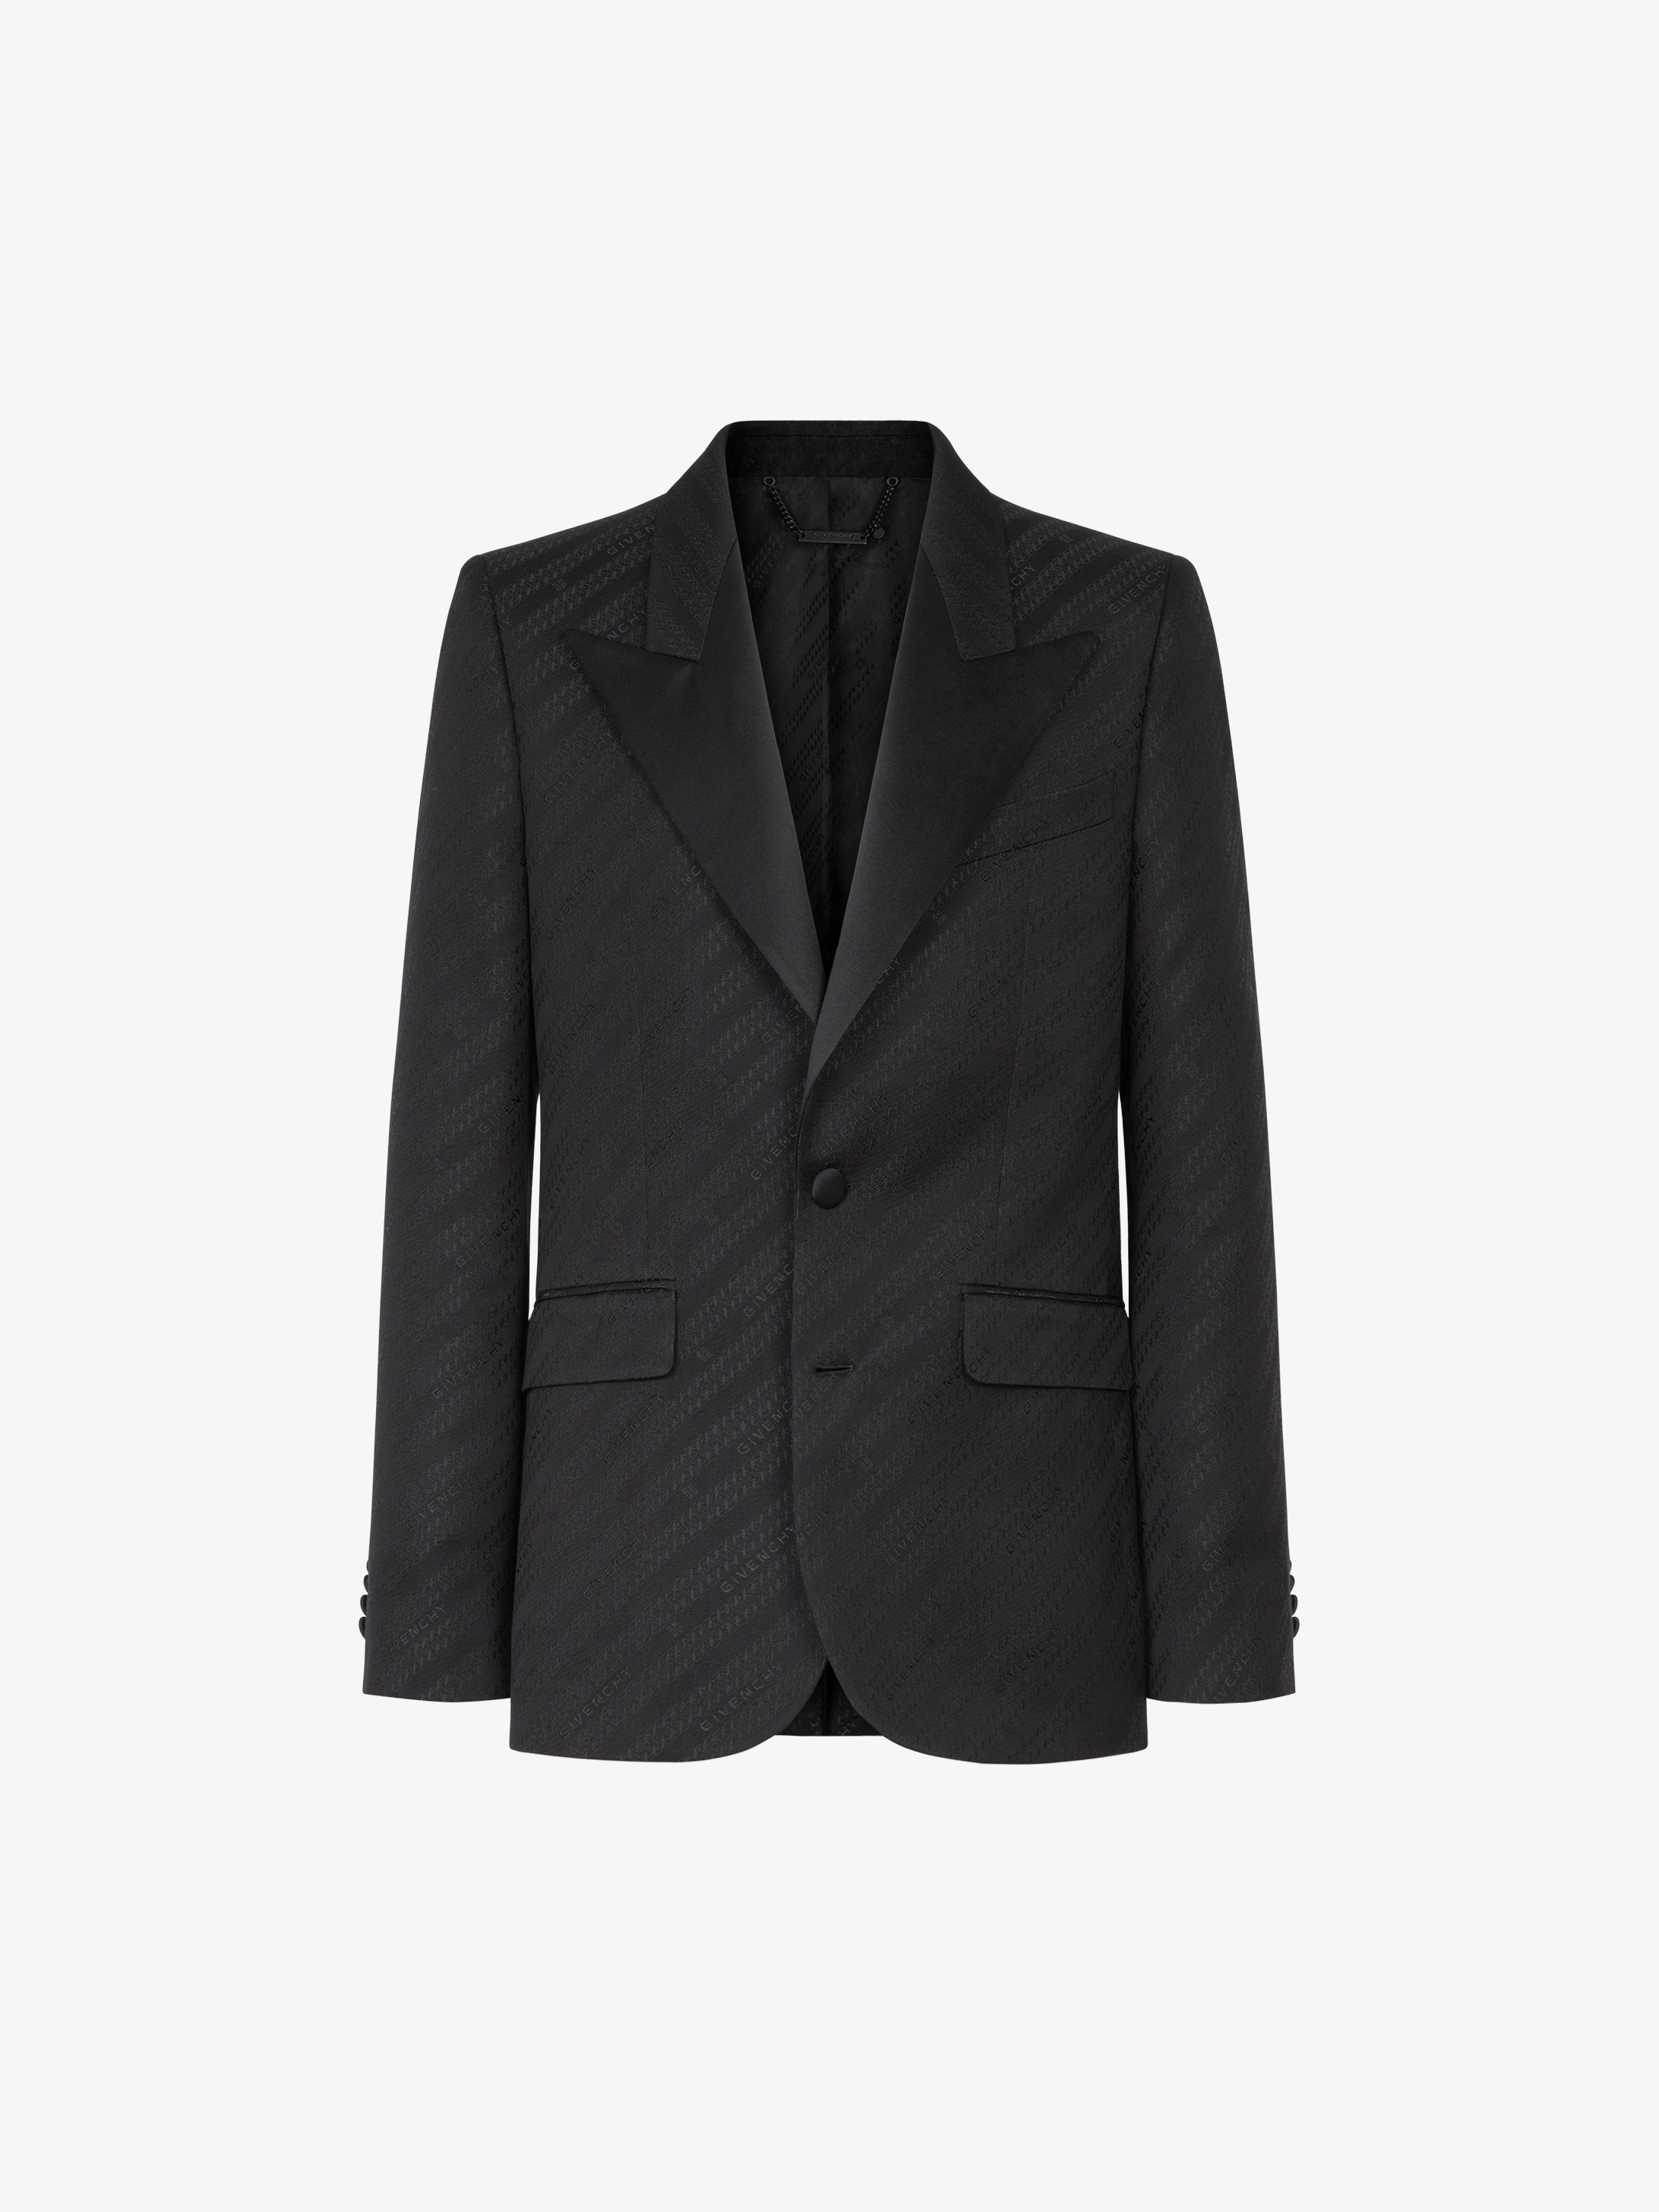 GIVENCHY Chain jacquard jacket with satin collar